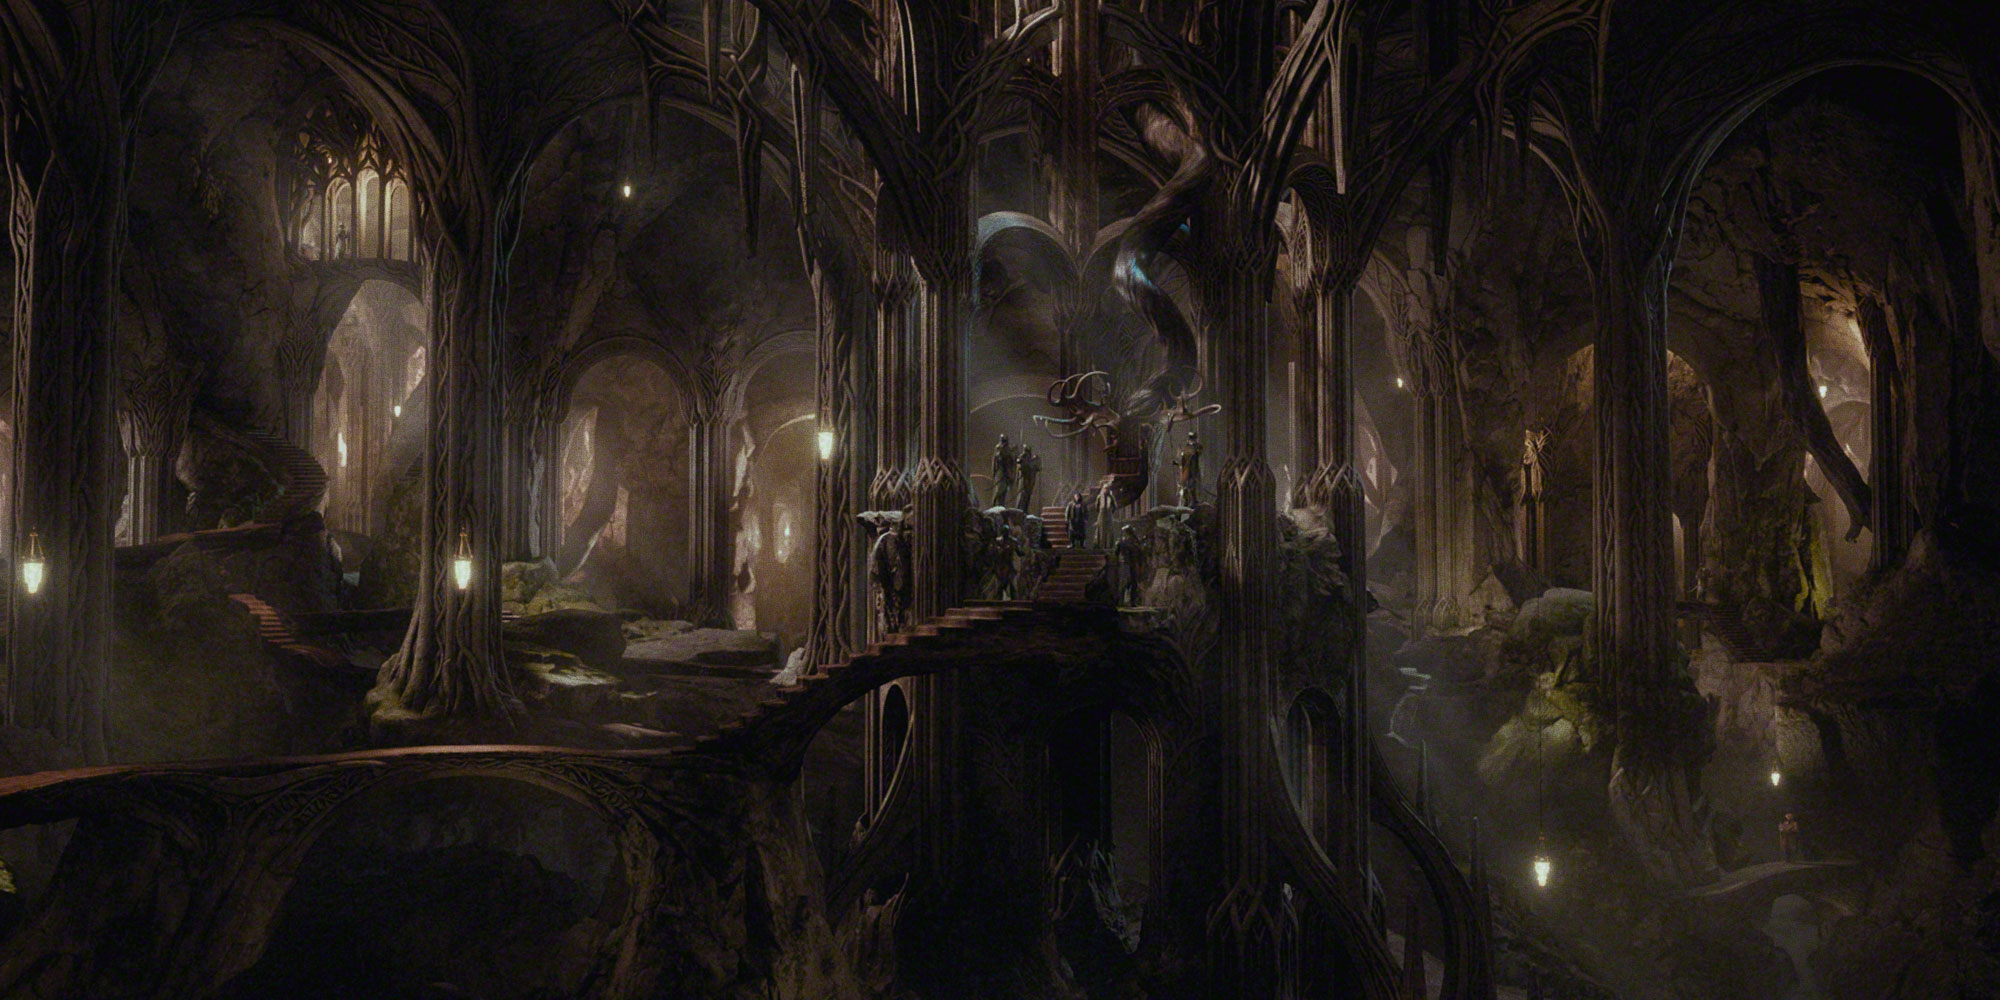 Halls_of_Thranduil_-_Interior.jpg